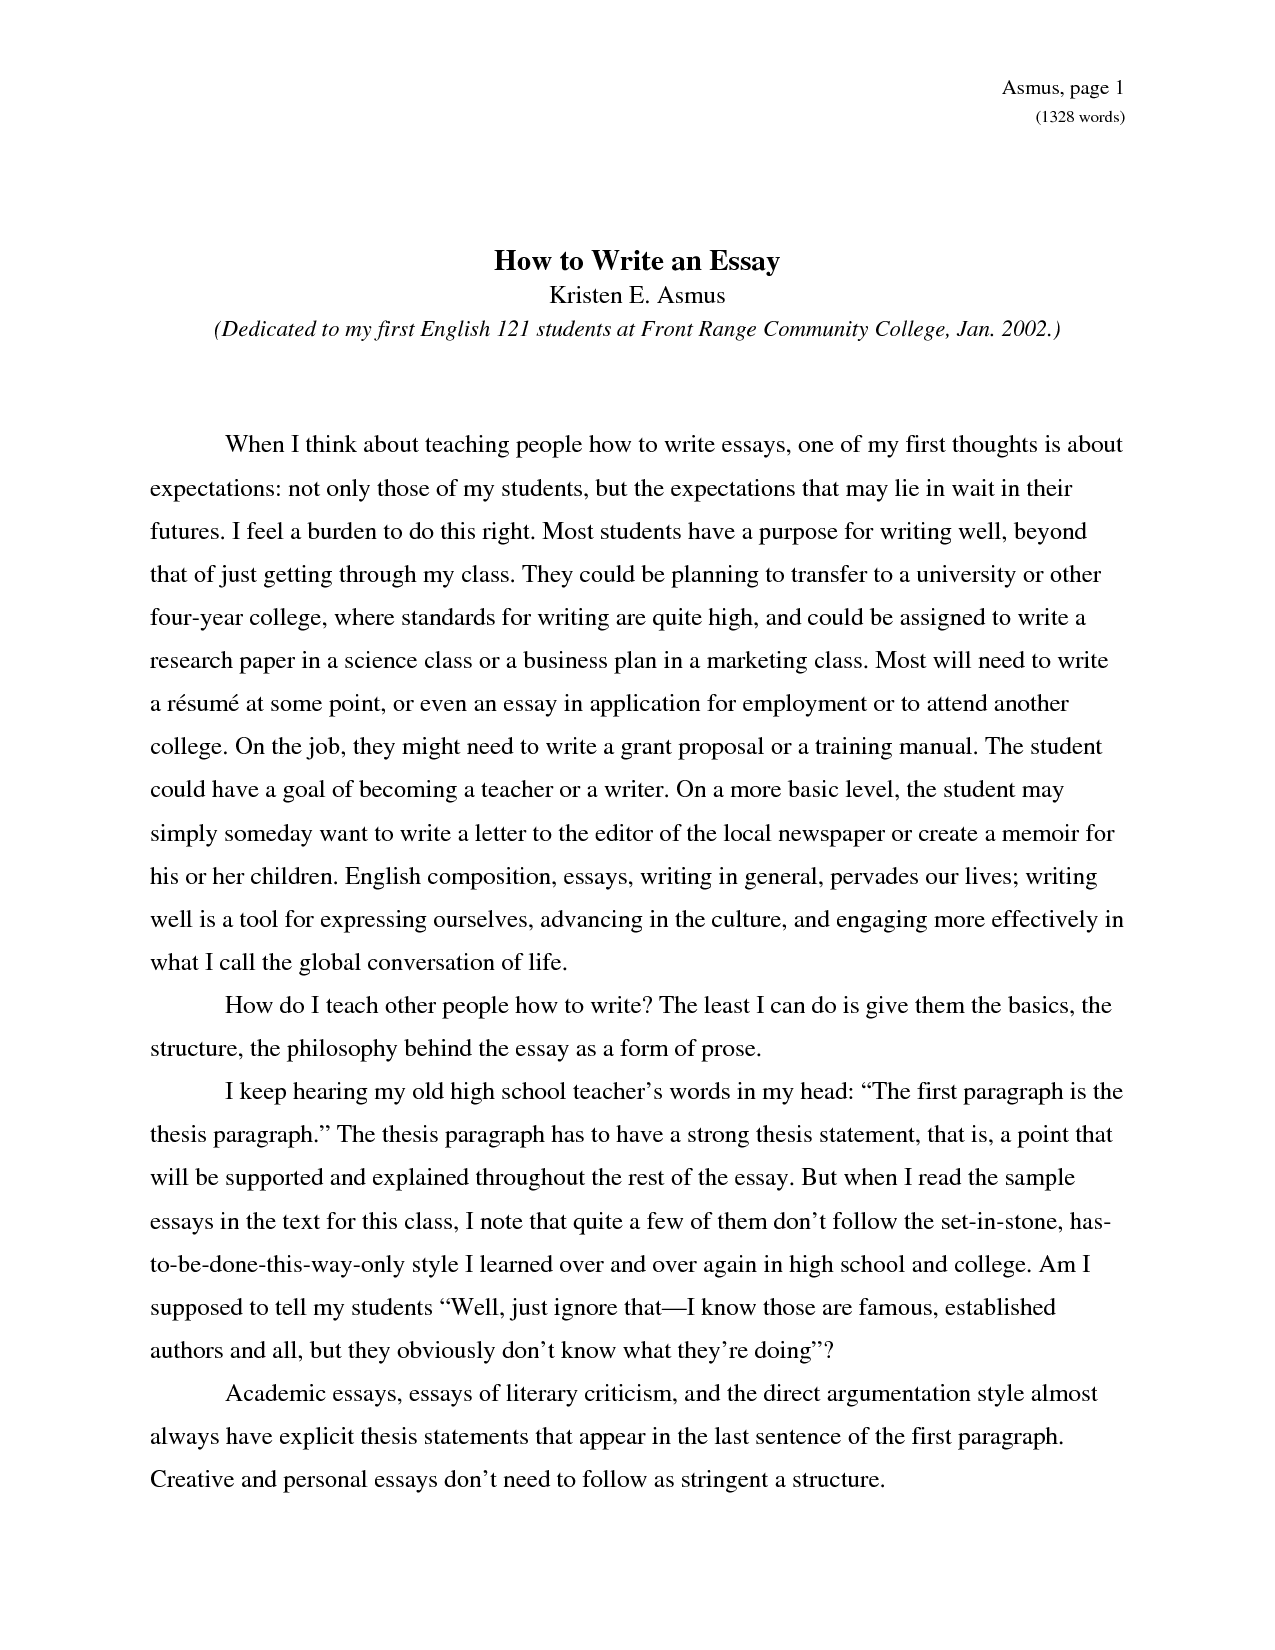 Help writing definition essay